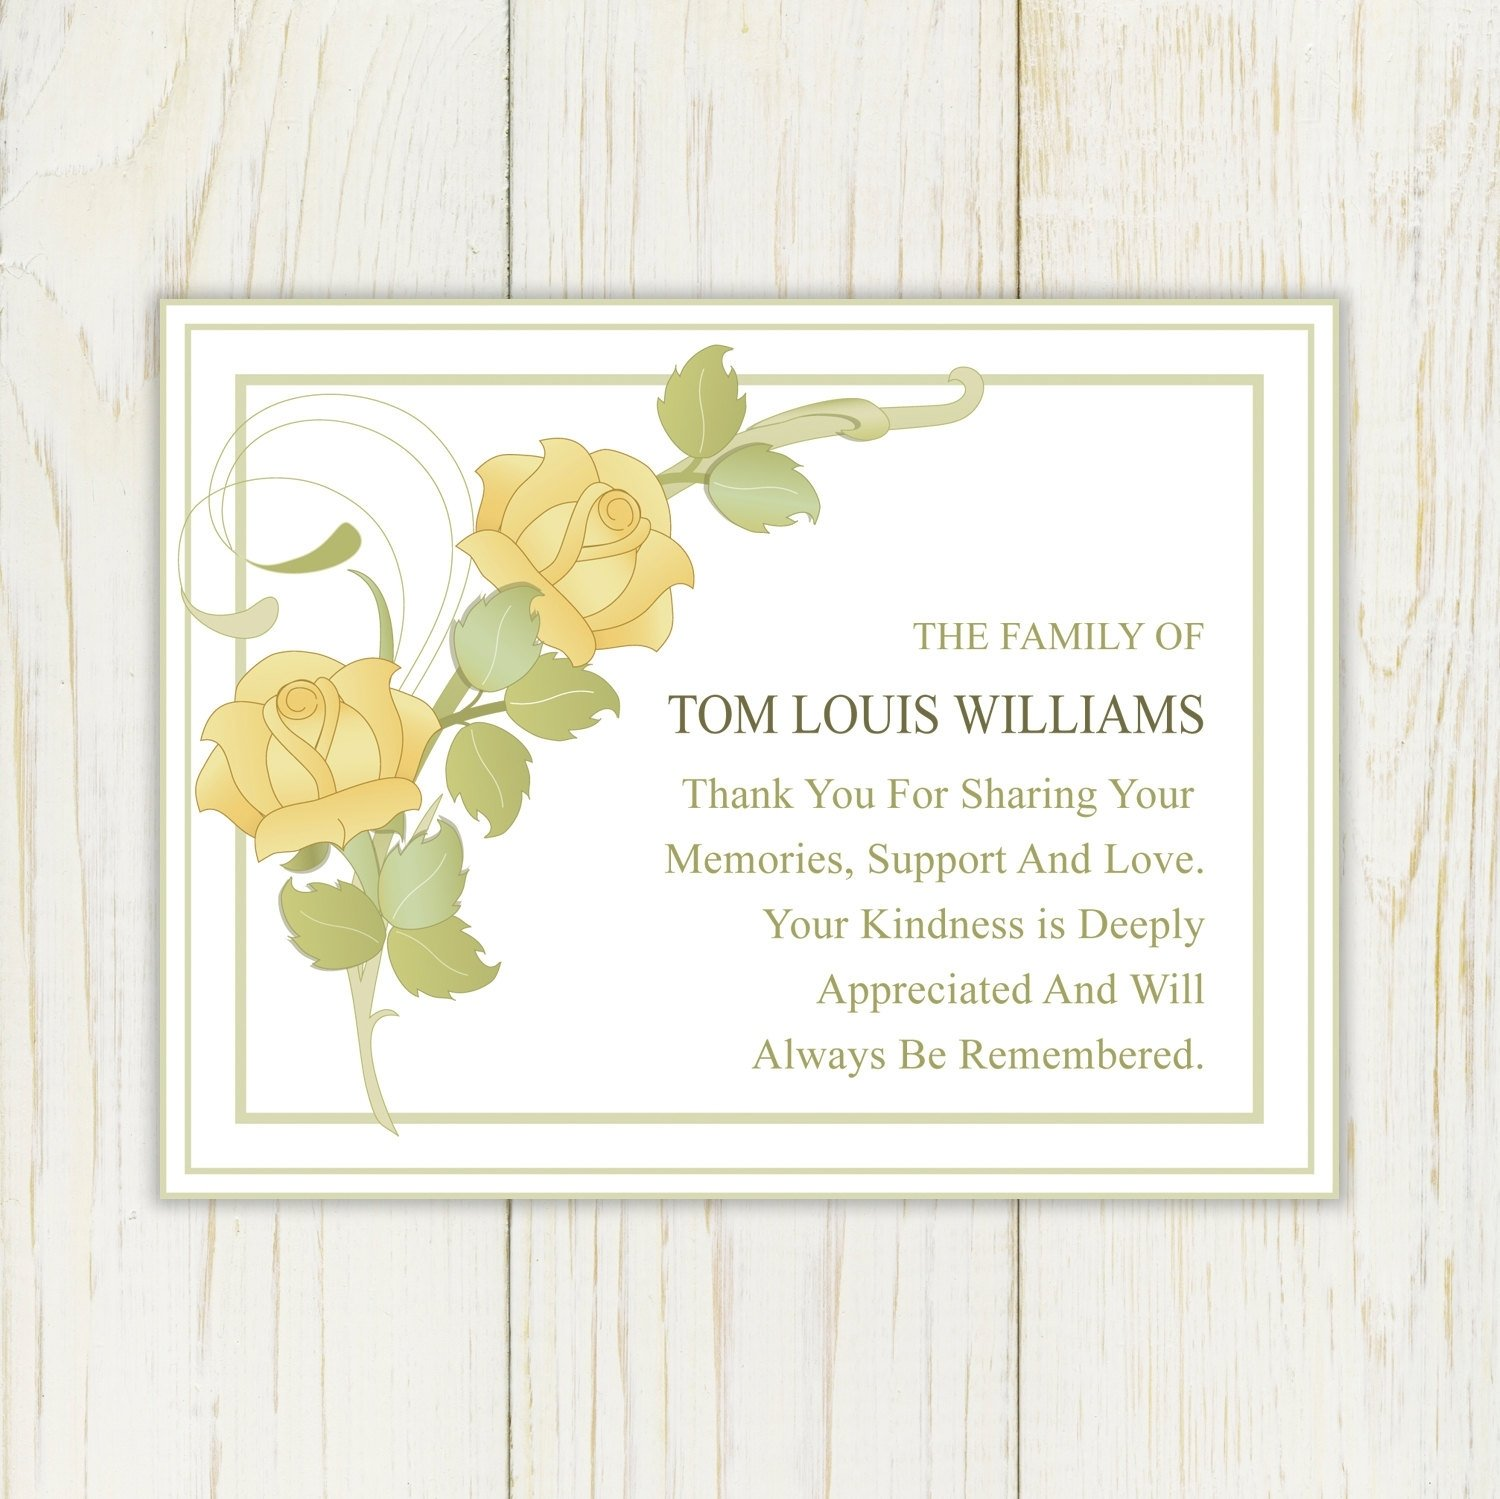 10 Fashionable Ideas For Thank You Notes card design ideas stupendous family thank you notes for sympathy 2020